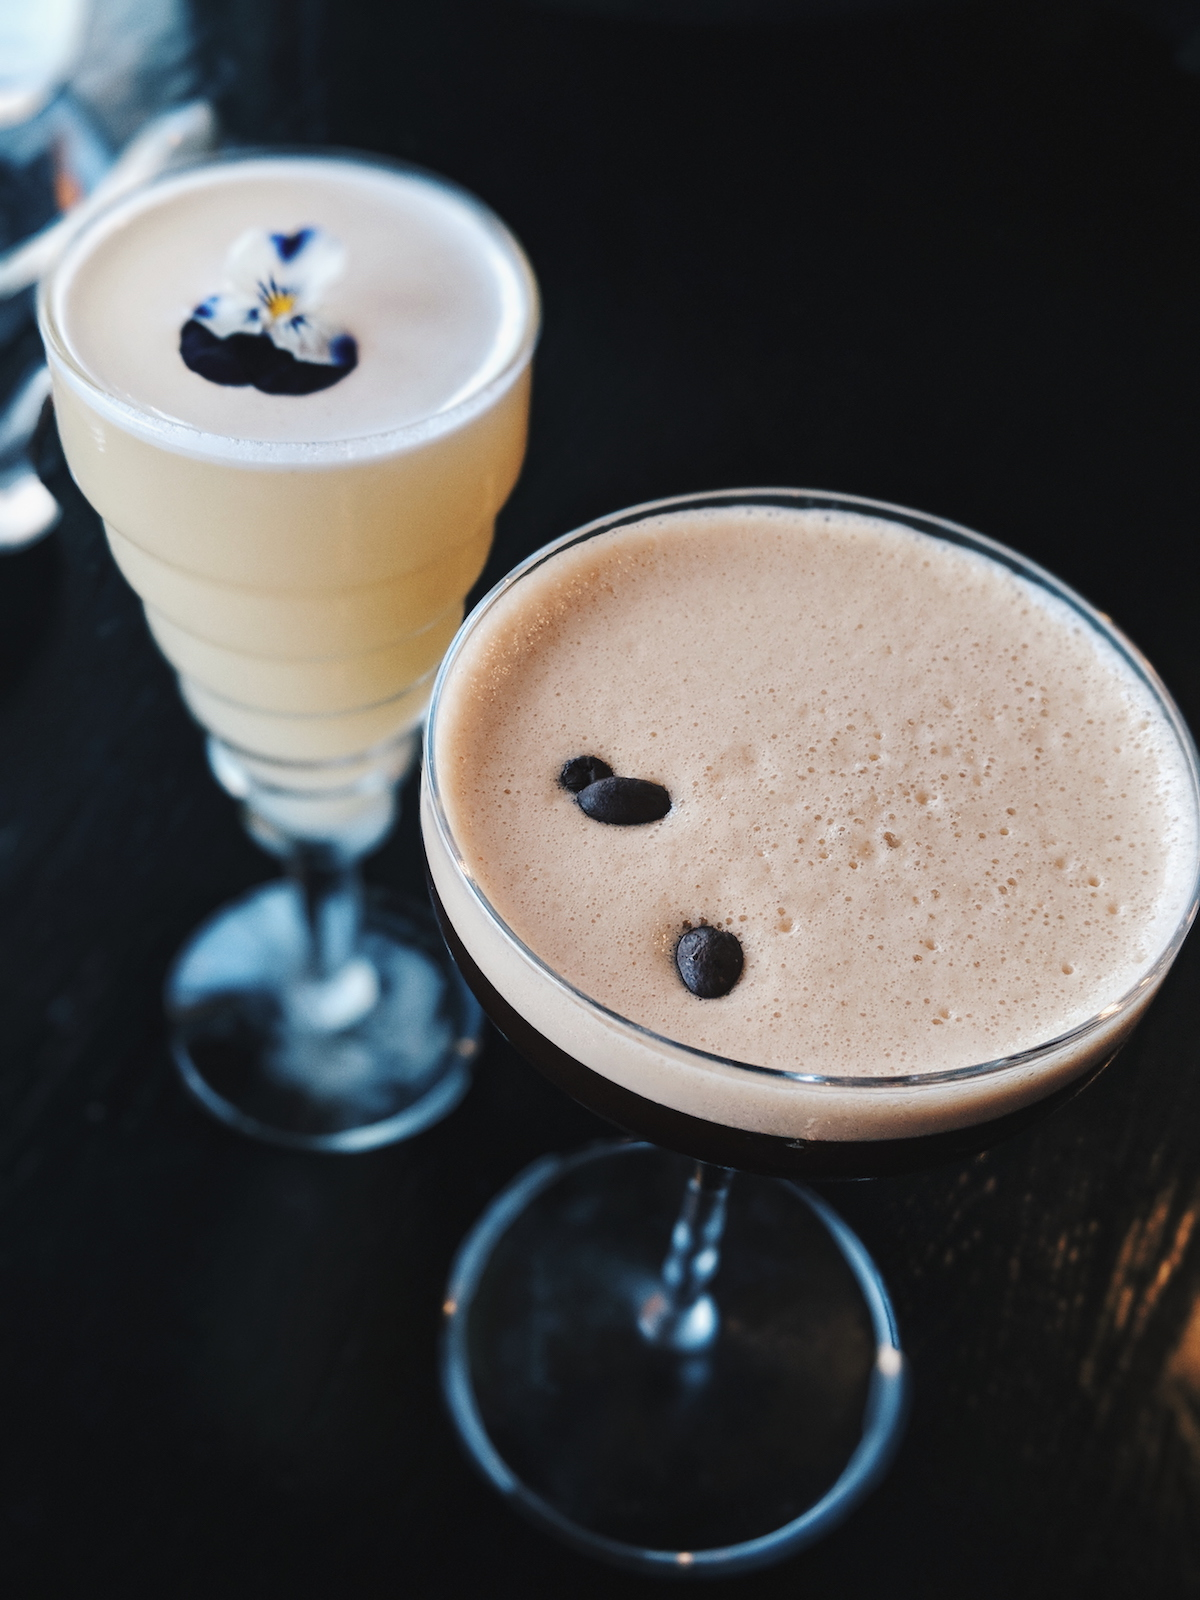 An espresso martini & Gingerbread Runaway cocktail from Sea Containers restaurant.